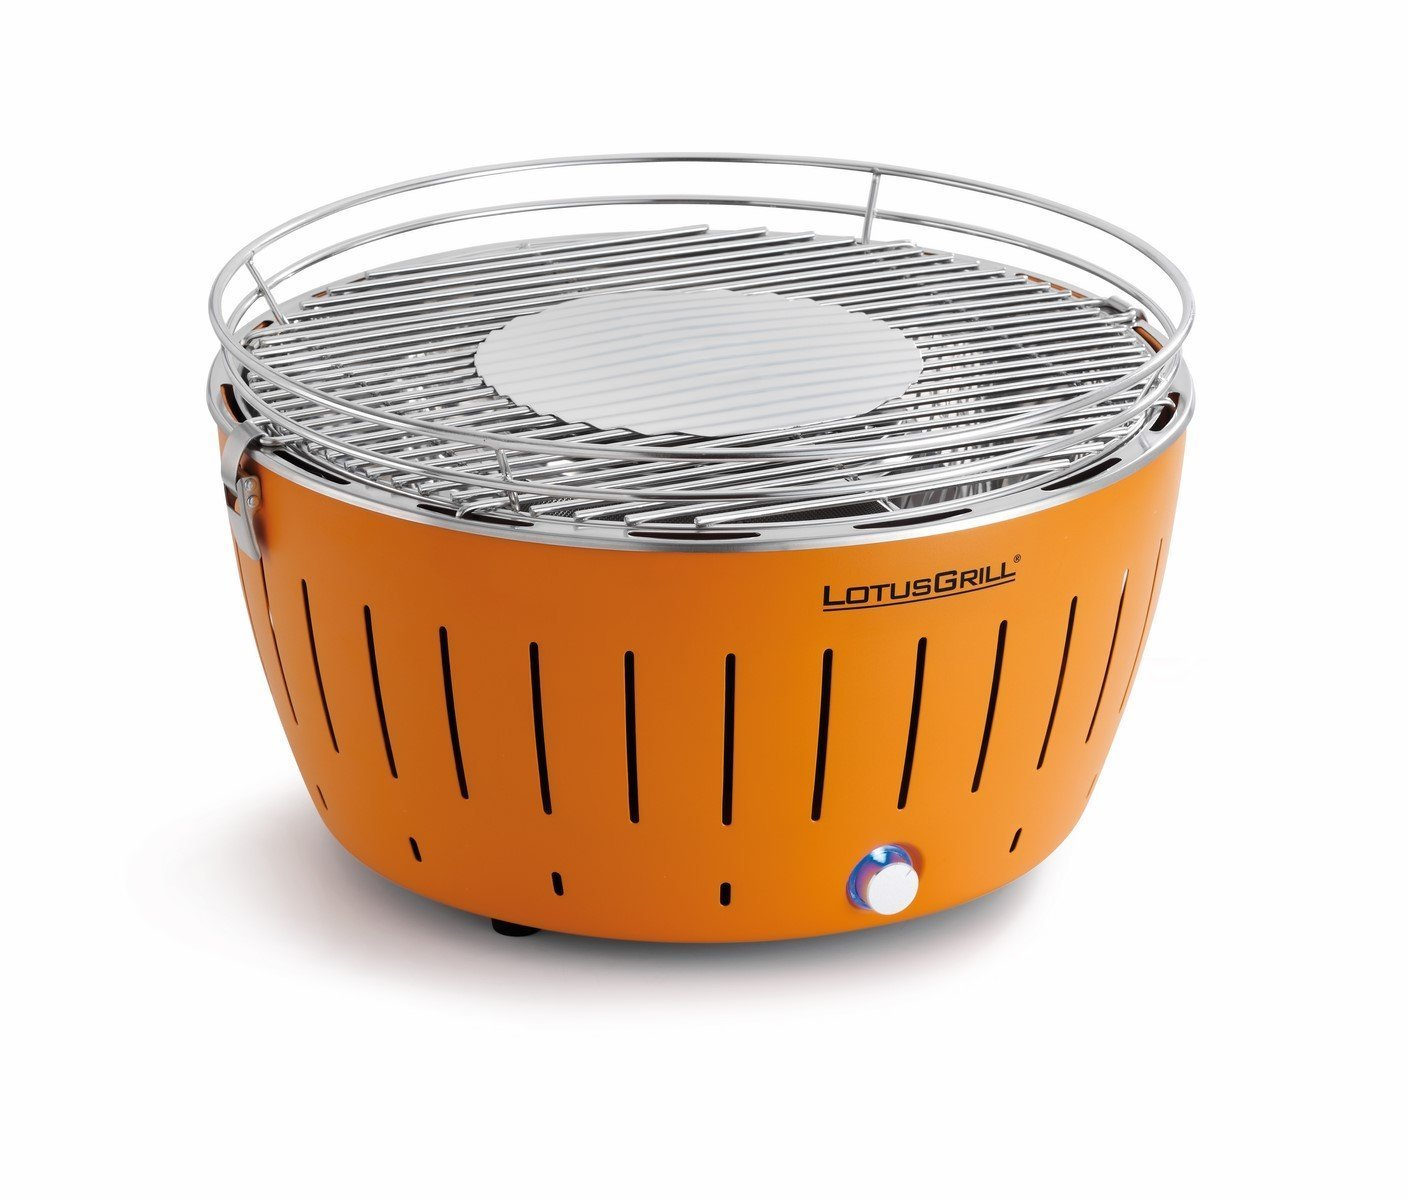 Lotusgrill Lotusgrill Standard Charcoal Barbecue With Fan Grill - Orange